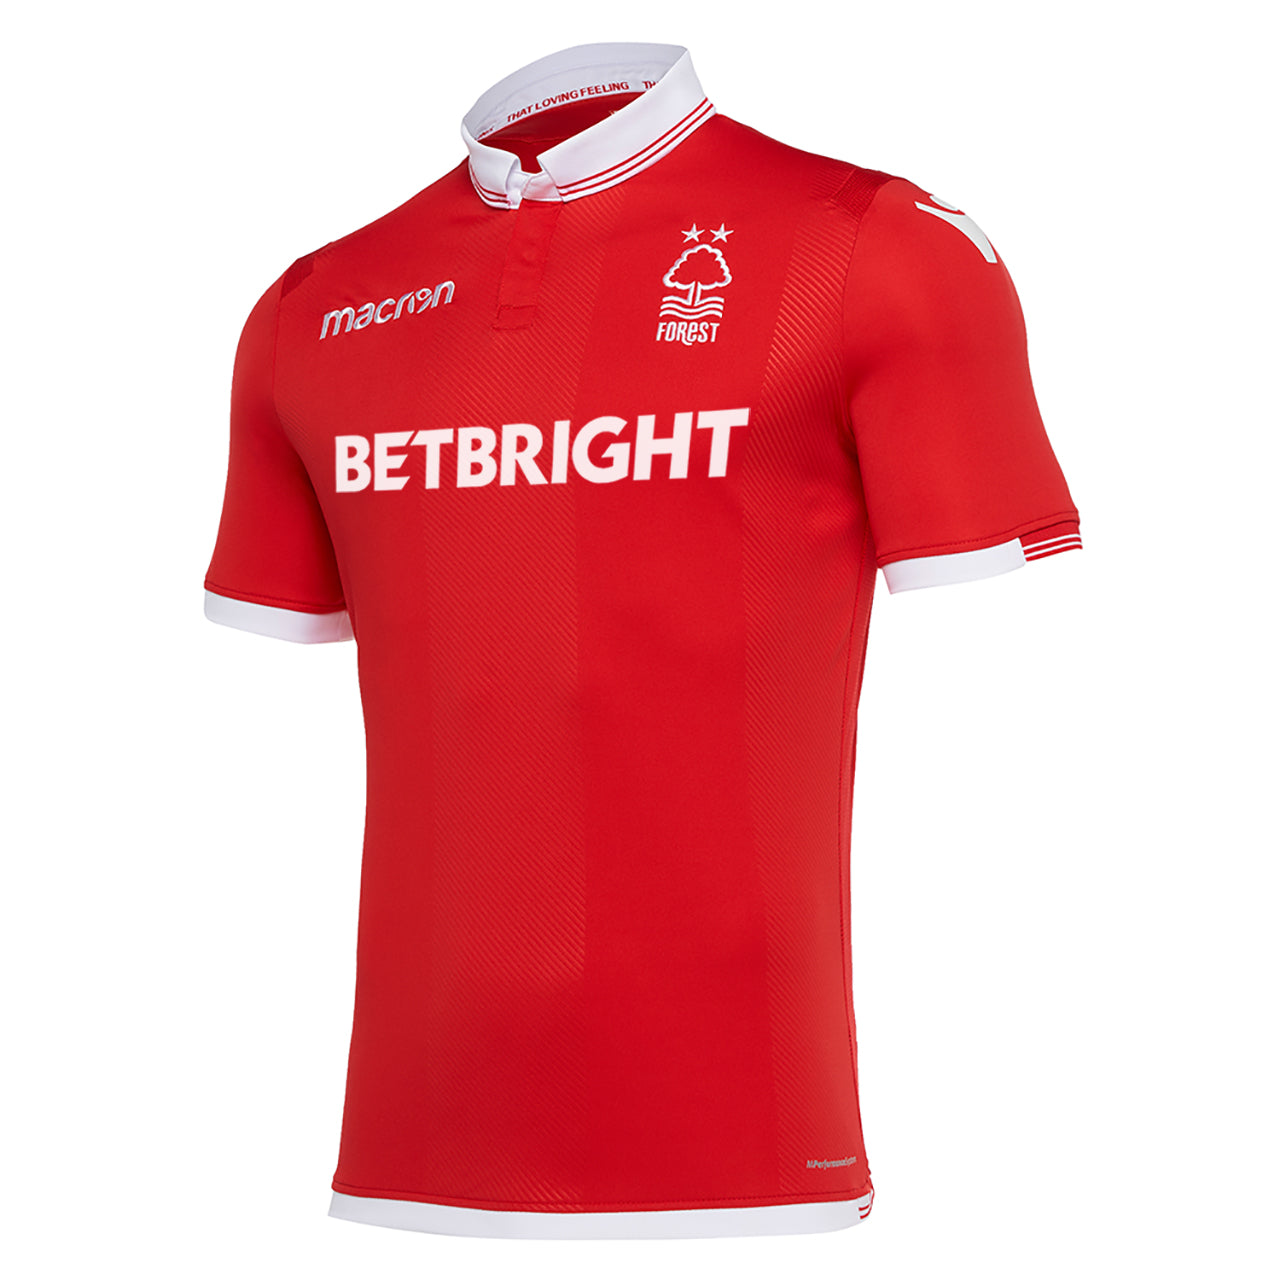 NFFC Mens Home Shirt 2018/19 - Nottingham Forest